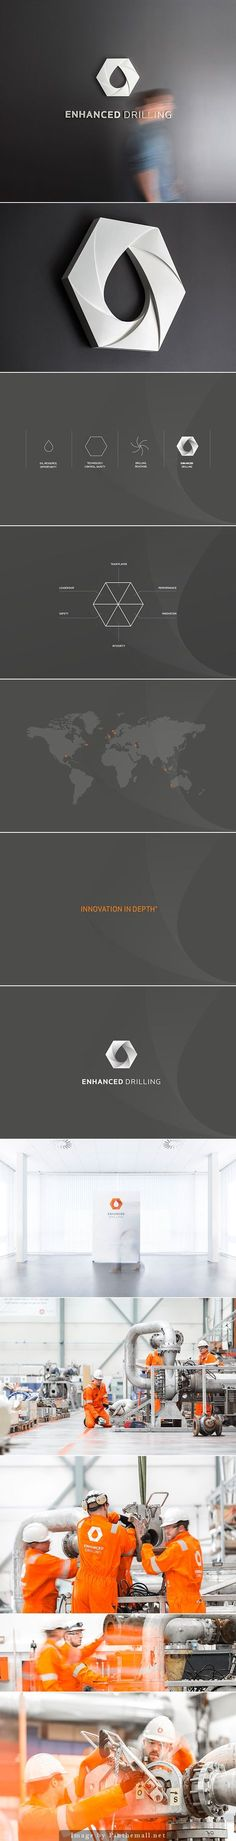 Enhanced Drilling, Branding/Corporate Identity by KIND | Conceptual Branding